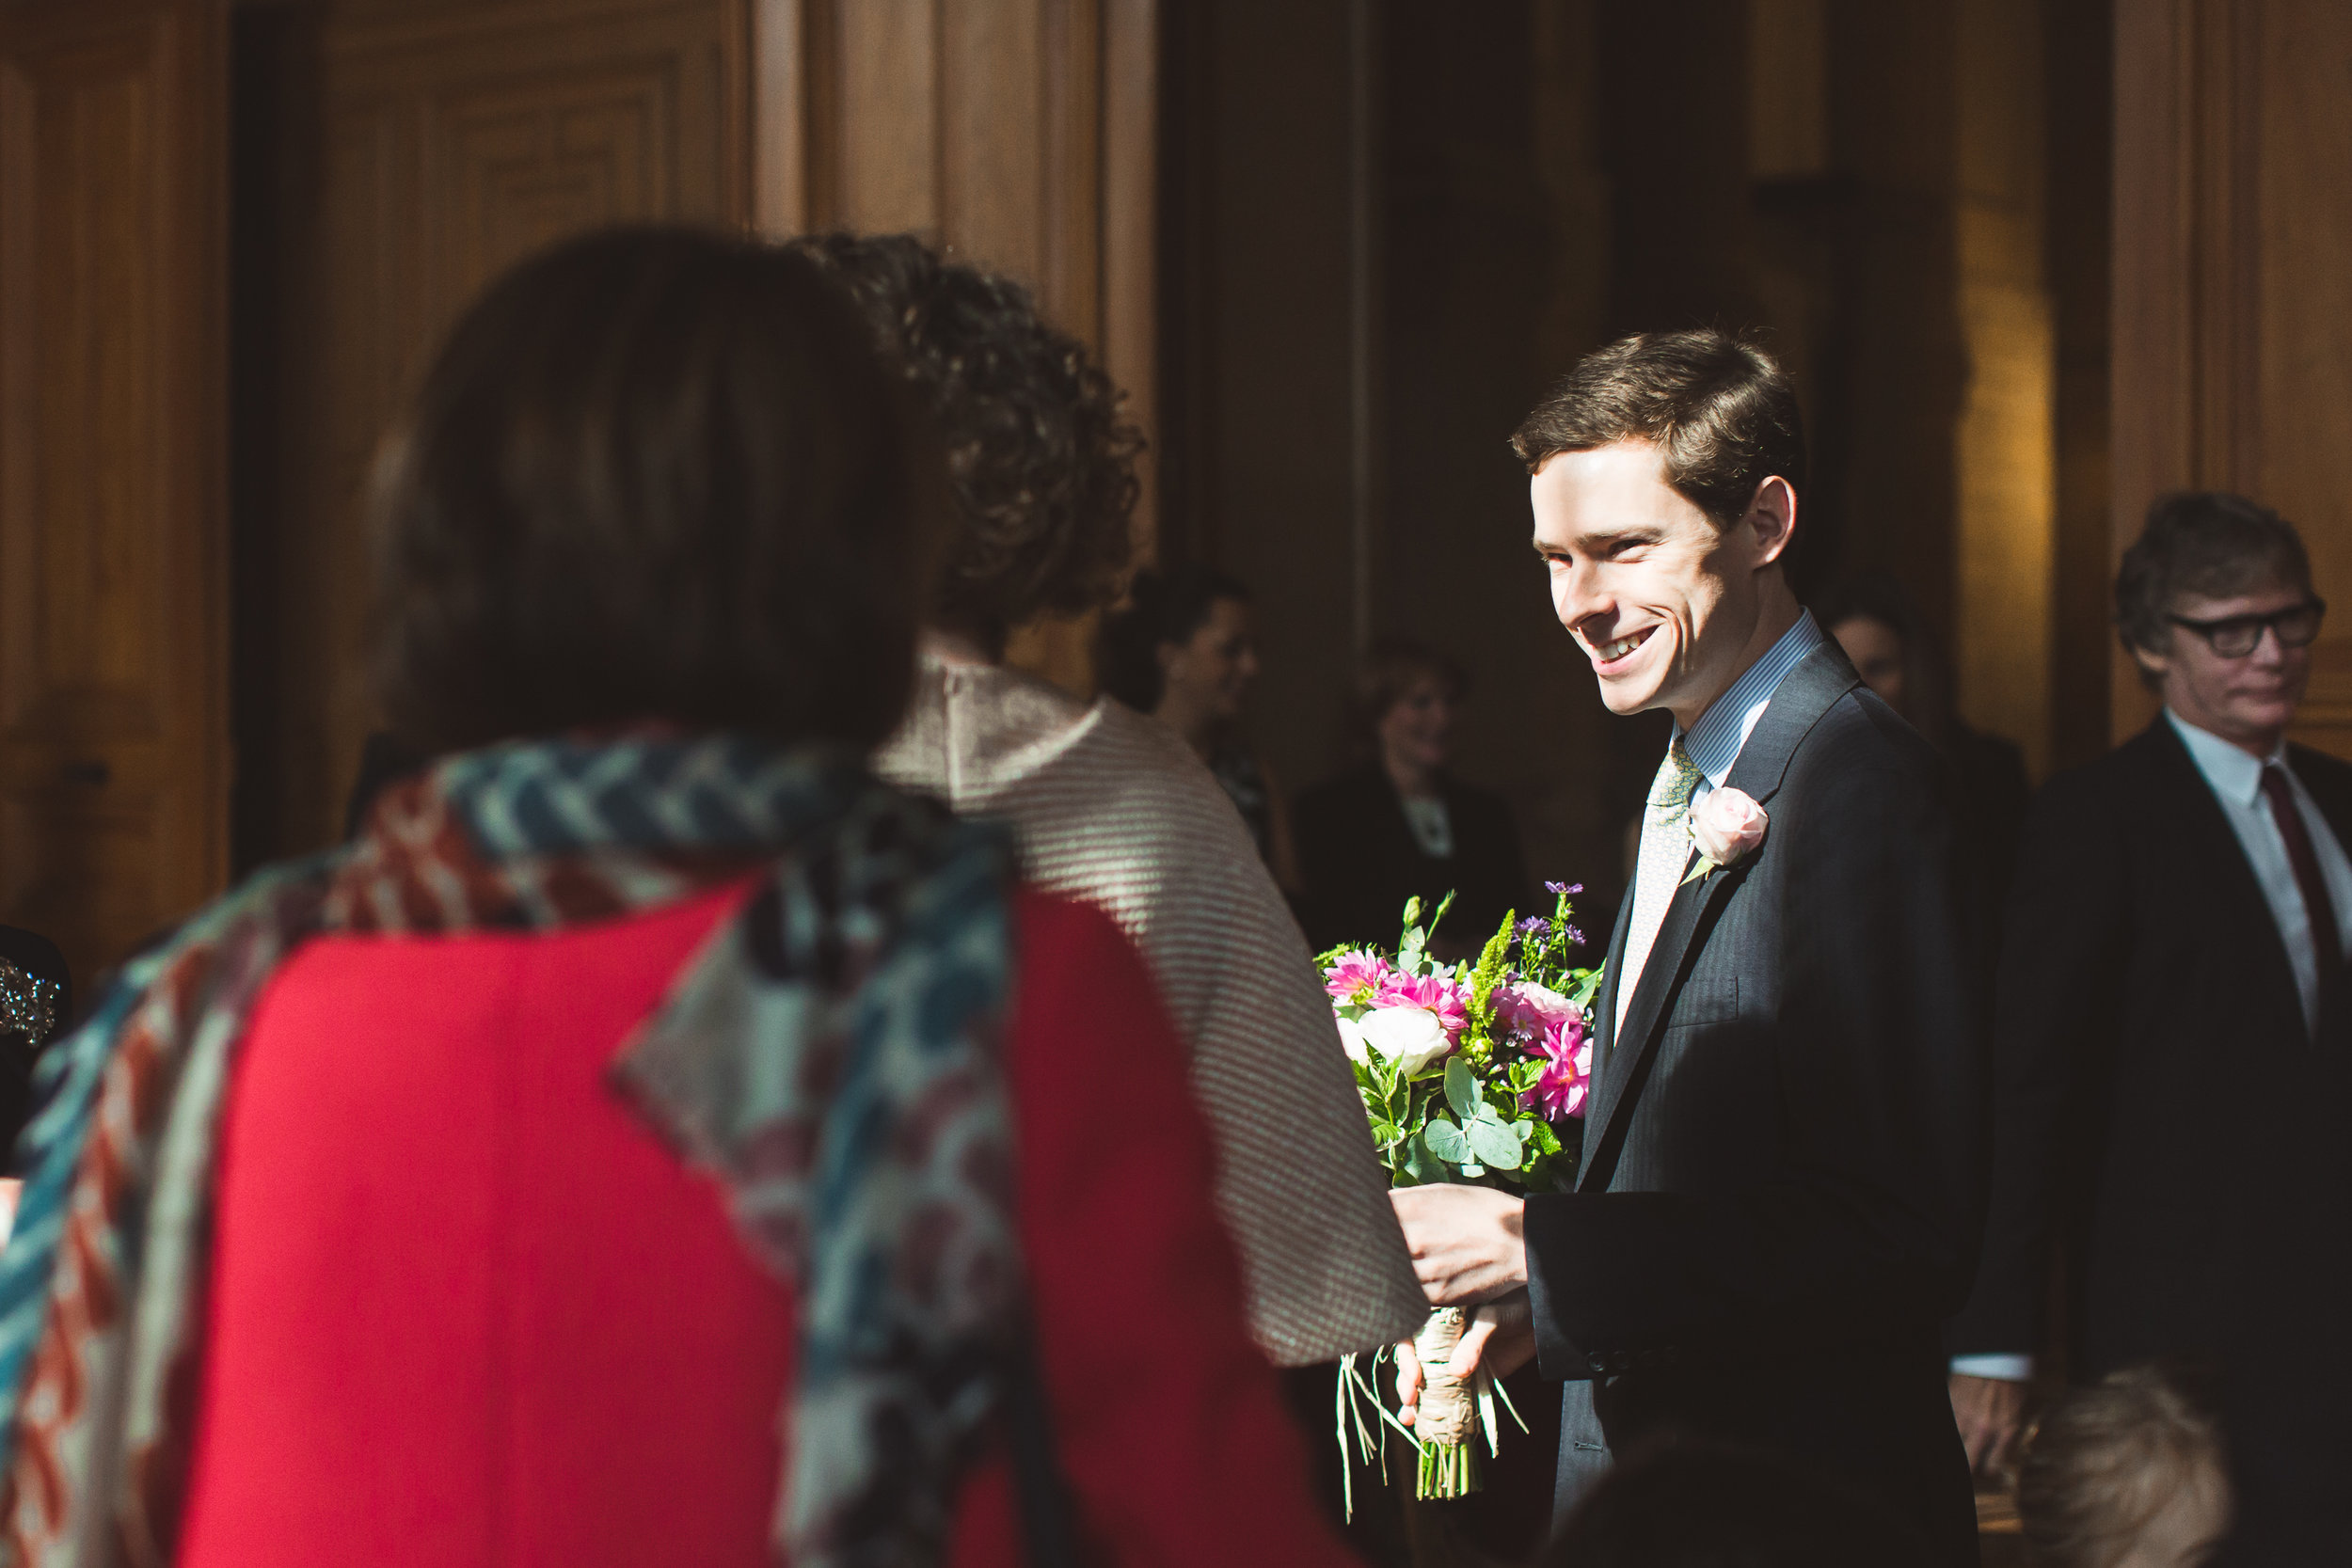 Emma&Nico_WeddingParis_by_UlaBlocksage-69.jpg